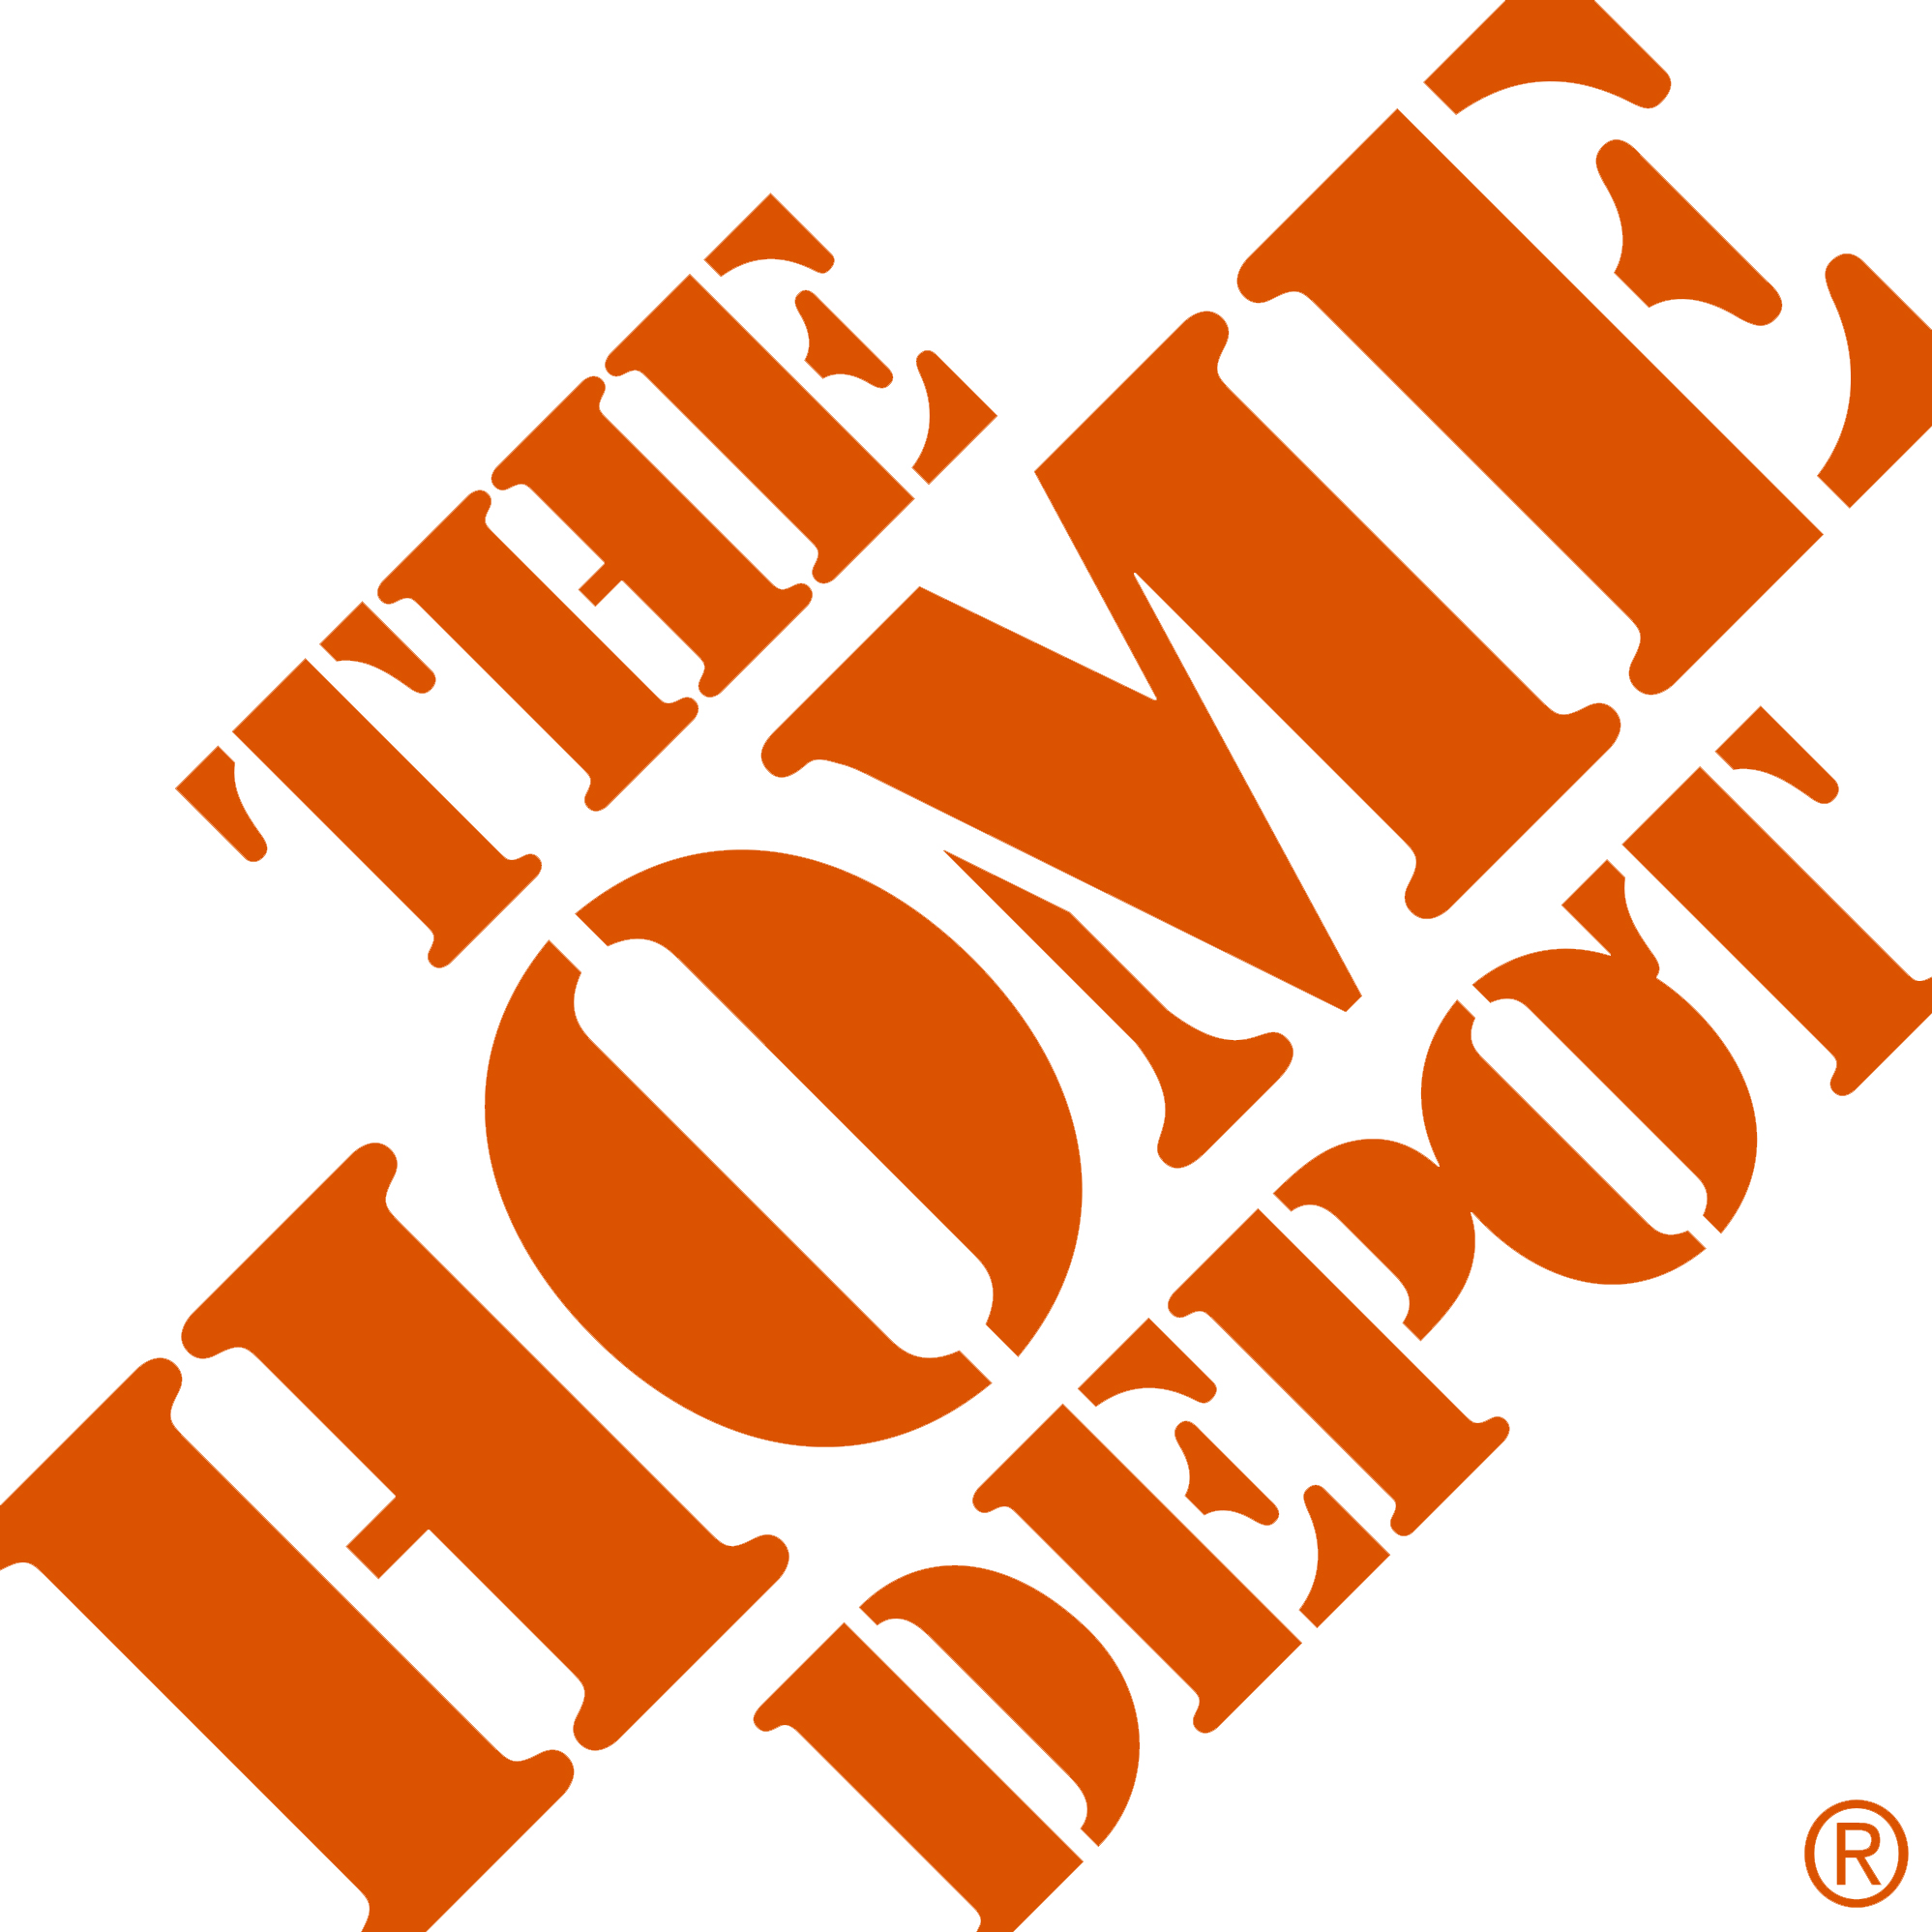 Welcome. Our name, The Home Depot, says it all. We've created a one-stop shop to help our customers build a home. We couldn't have done it without the culture and feeling of home and family among the associates in our stores, distribution centers and corporate office.